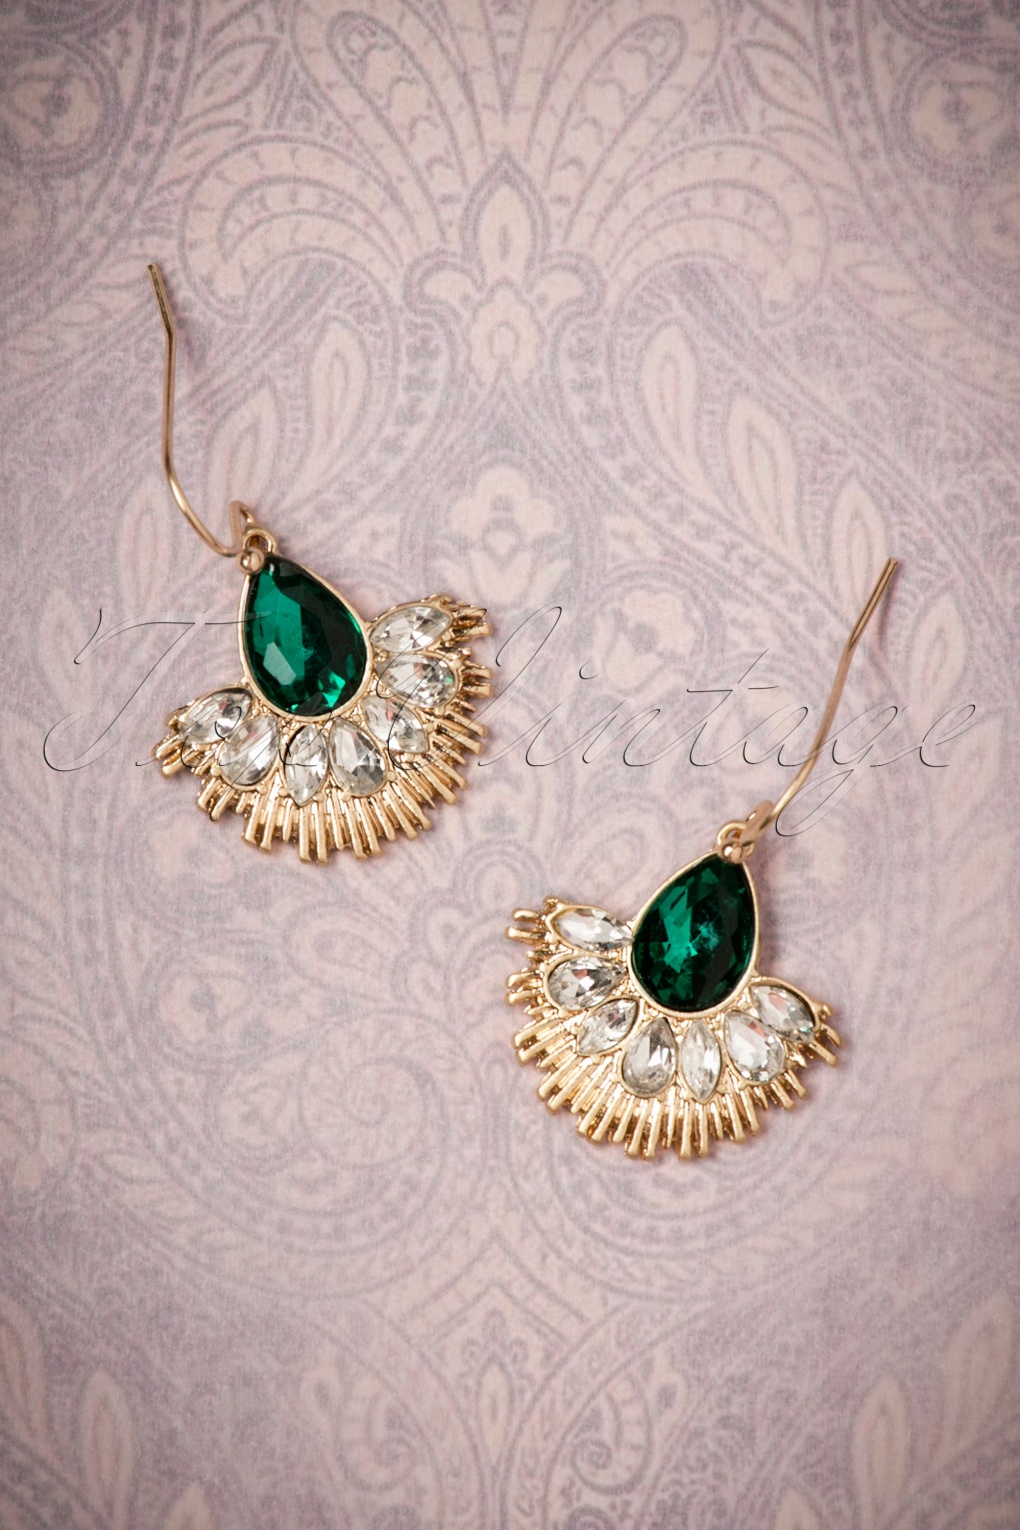 1920s Jewelry Styles History 20s Crystal Fan Drop Earrings in Gold and Green £17.06 AT vintagedancer.com